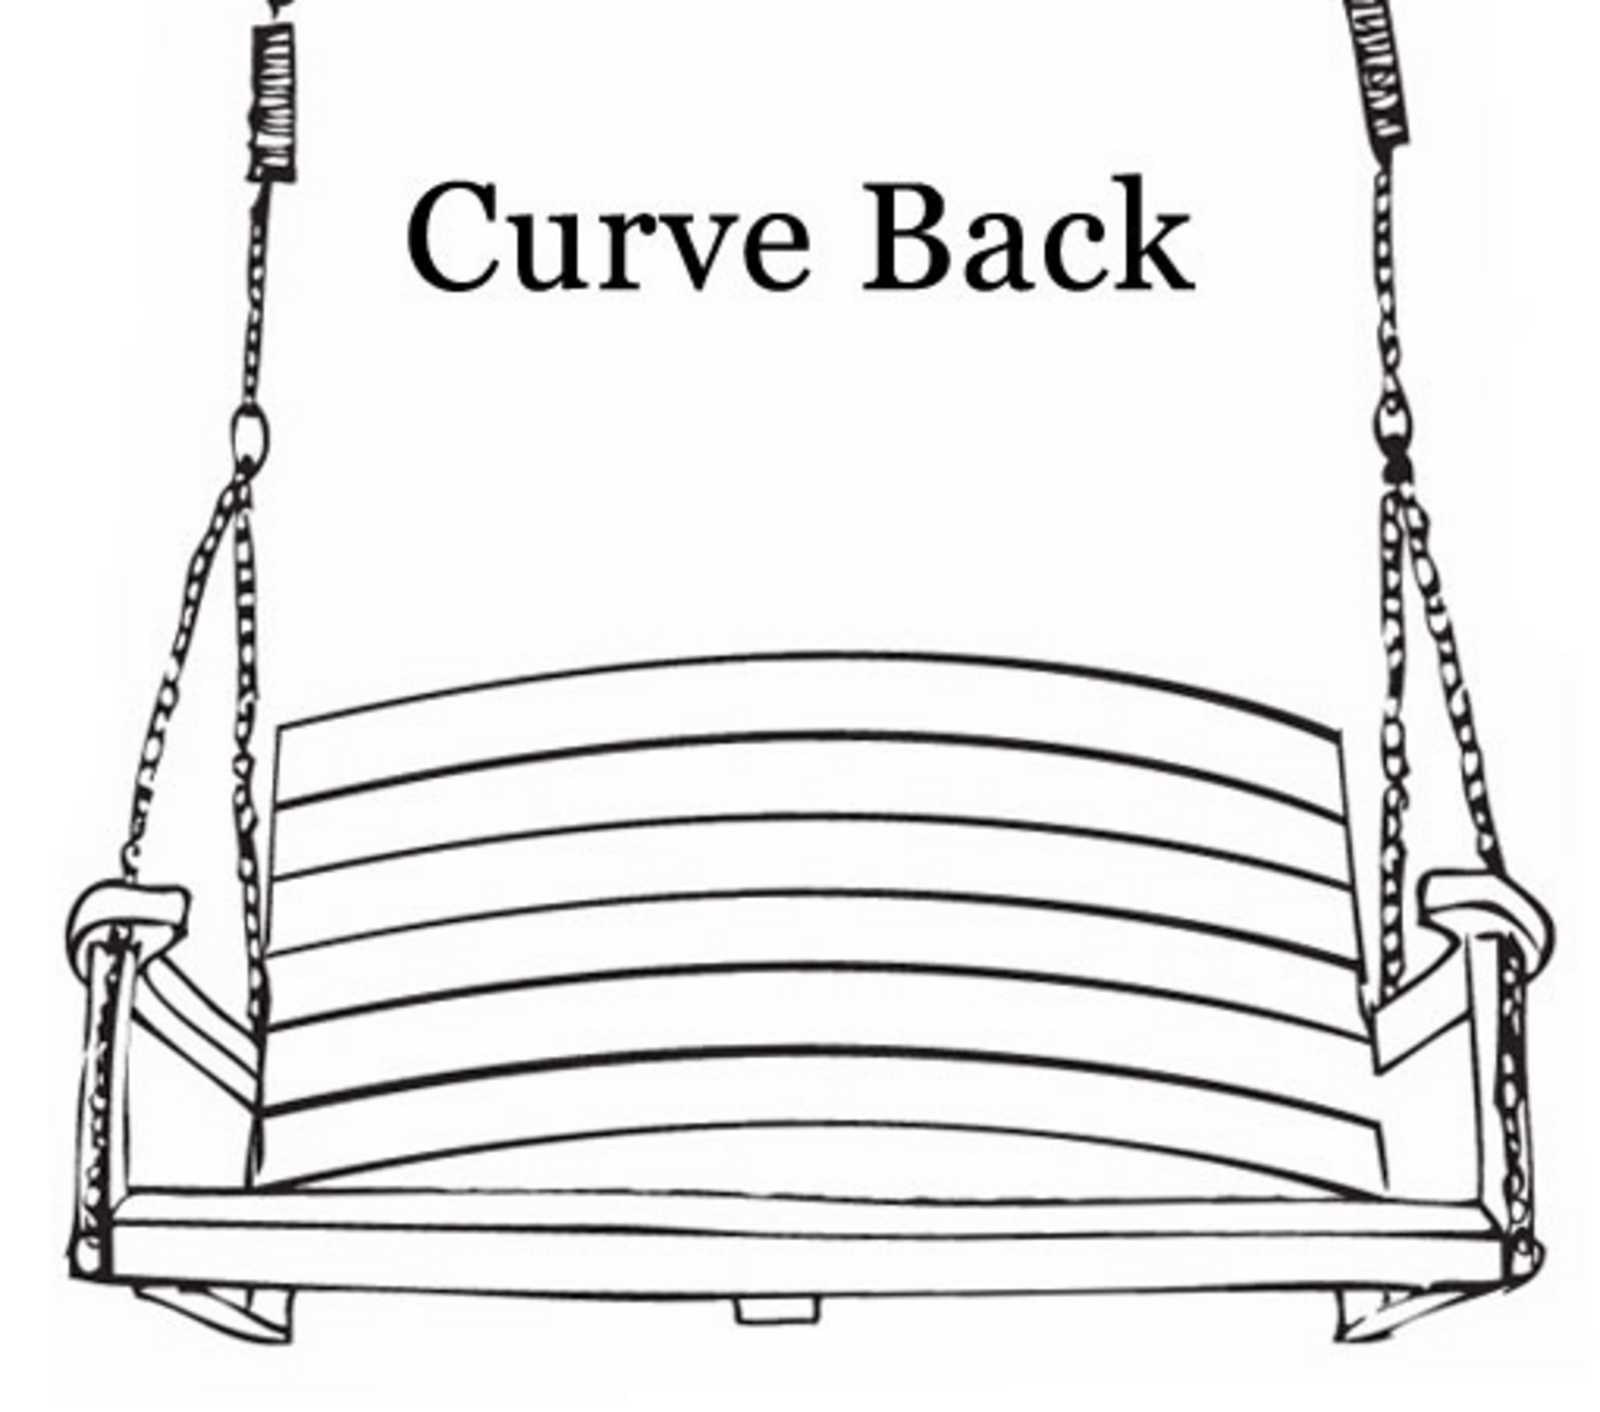 Swing Seat Back Designs - Curve Back